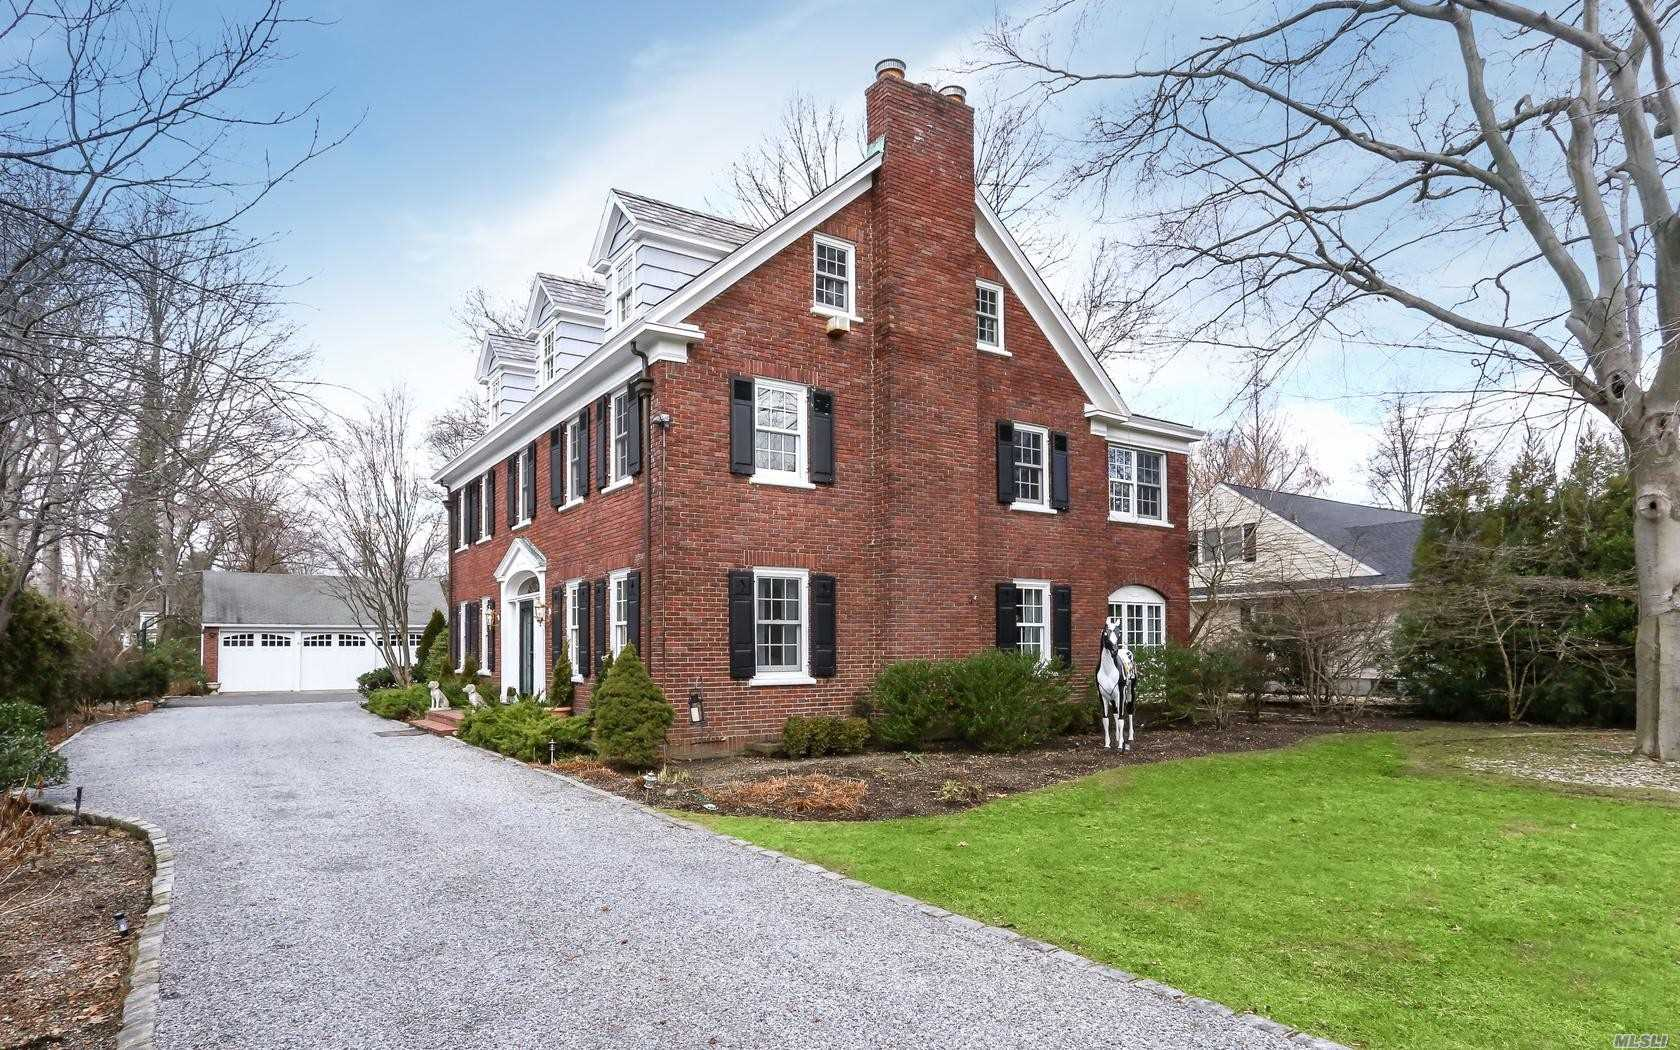 This Beautiful Brick Center Hall Colonial In The Central Section Of Town Boasts A 100 X 263 Lot. The Home Features A Grand Ent Fyr, Spacious Lr W/Fp, Fdr, Eik W/Bp, Office W/Fp, & Den. The 2nd Fl Mbr Suite W/Sitting Rm & 4 Addl 2nd Fl Brs Serviced By 3 Full Baths. Spacious Walk Up Attic For Storage, Basement Rec Rm W/Fp, 4 Zones Heat, 2 Zones Cac, Young Windows & Boiler. A Remarkable Value For The Size & Location Of The Home & The Lot!